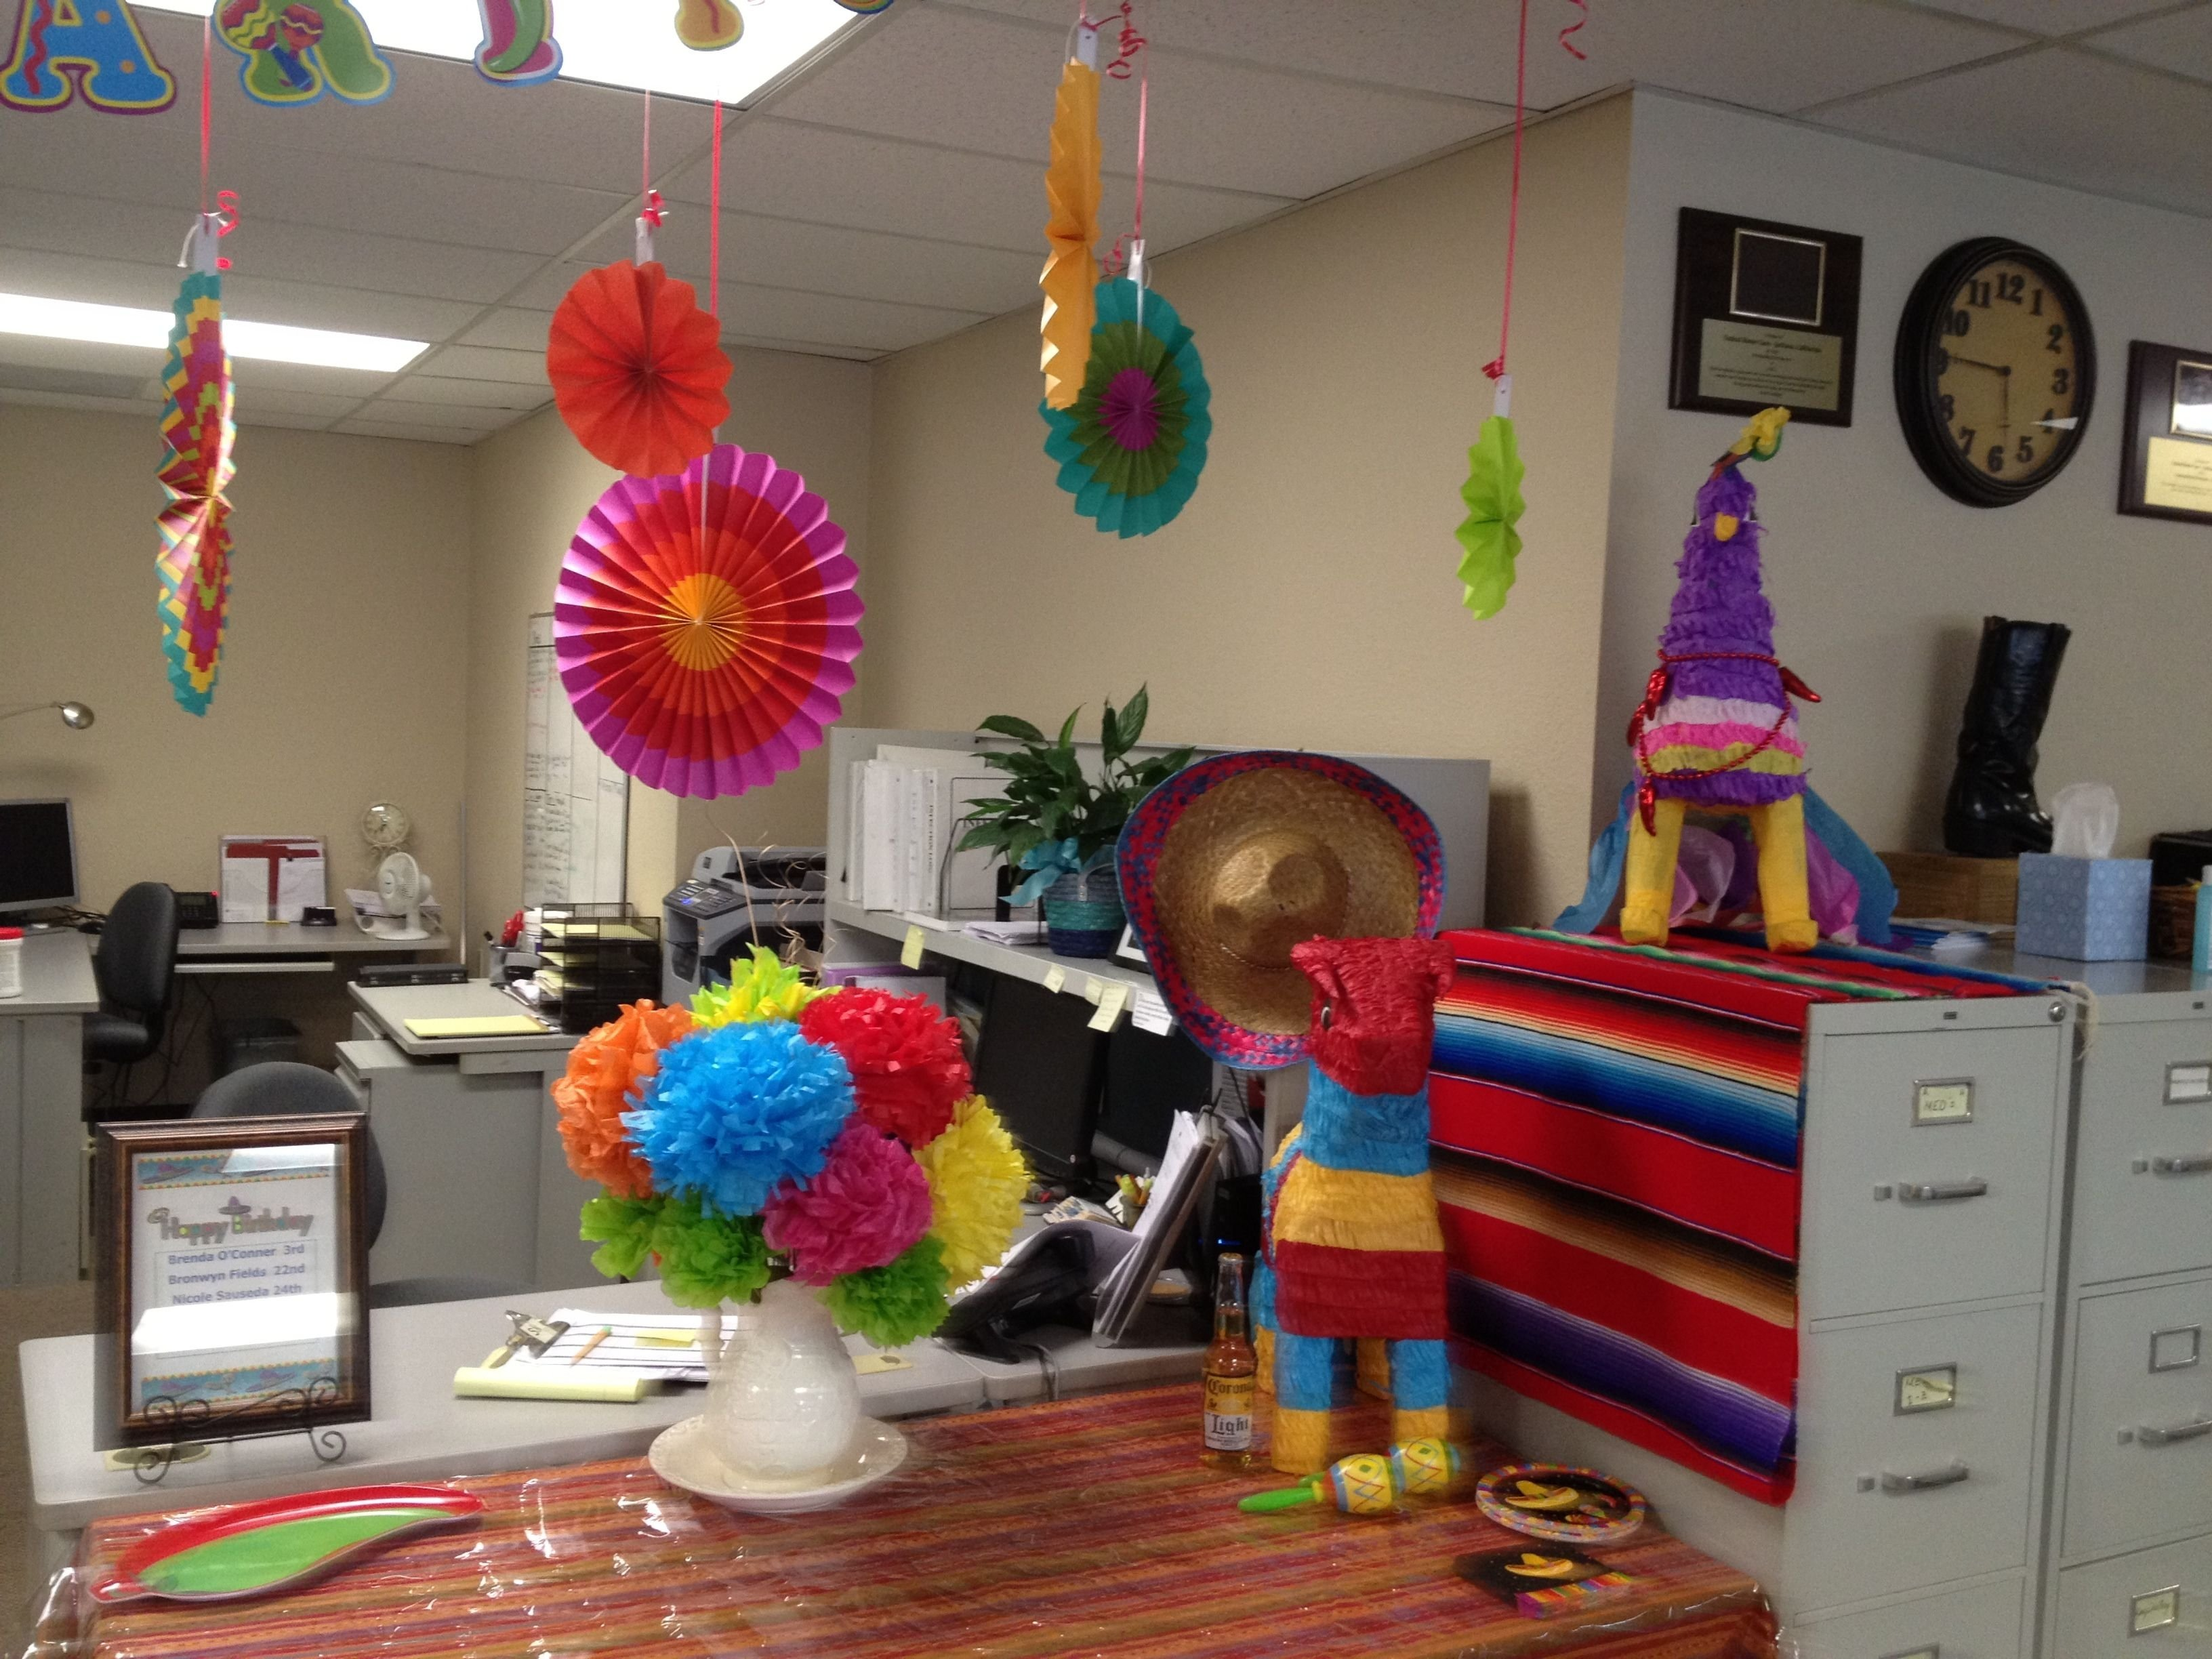 cinco de mayo office potluck | my decorations | pinterest | office